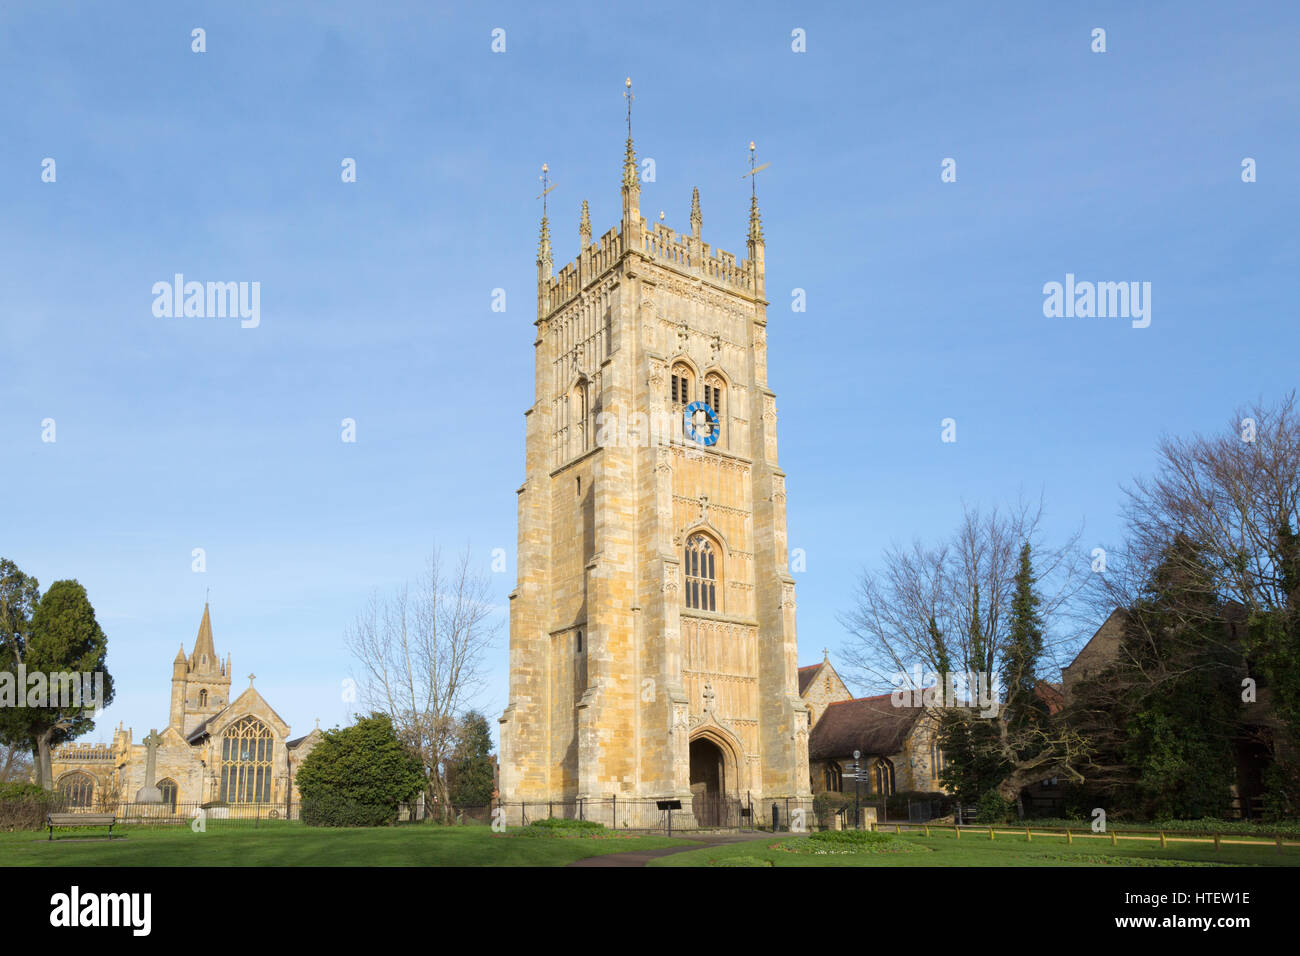 The Bell Tower, Evesham, Worcestershire England UK, built in the 16th century as part of Evesham Abbey - Stock Image